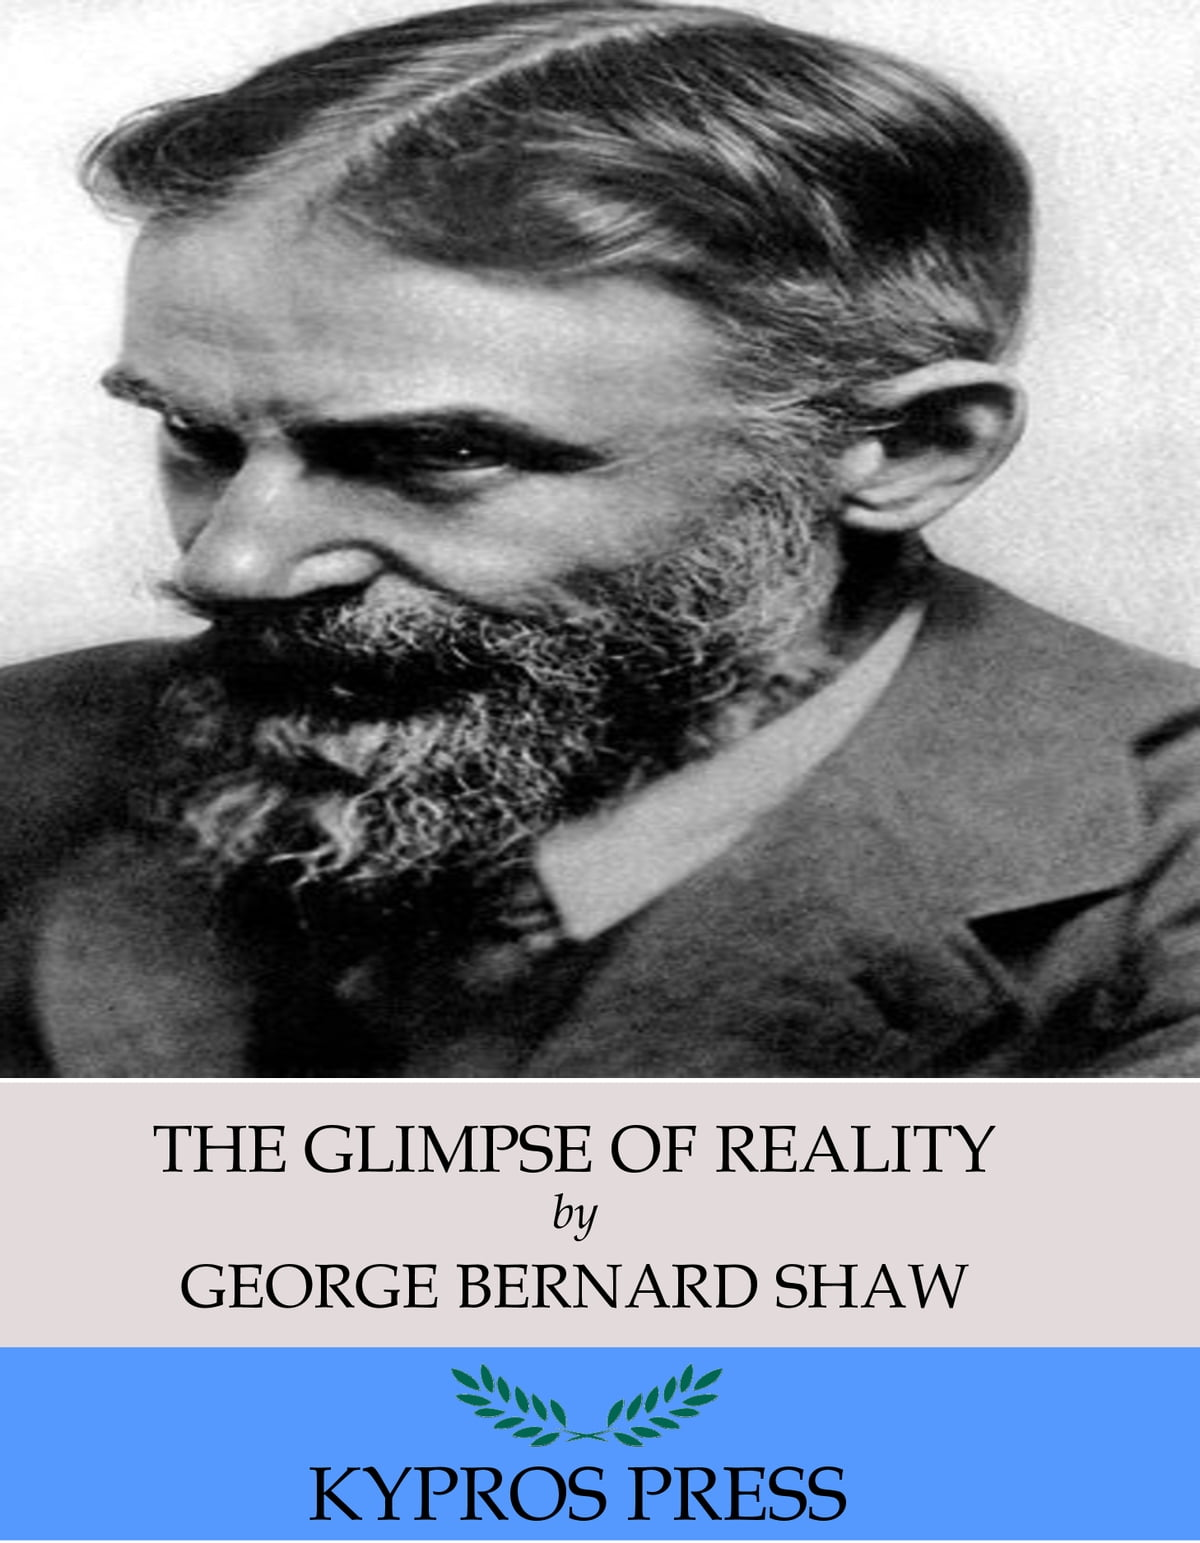 the glimpse of reality ebook by george bernard shaw the glimpse of reality ebook by george bernard shaw 9781531243487 kobo